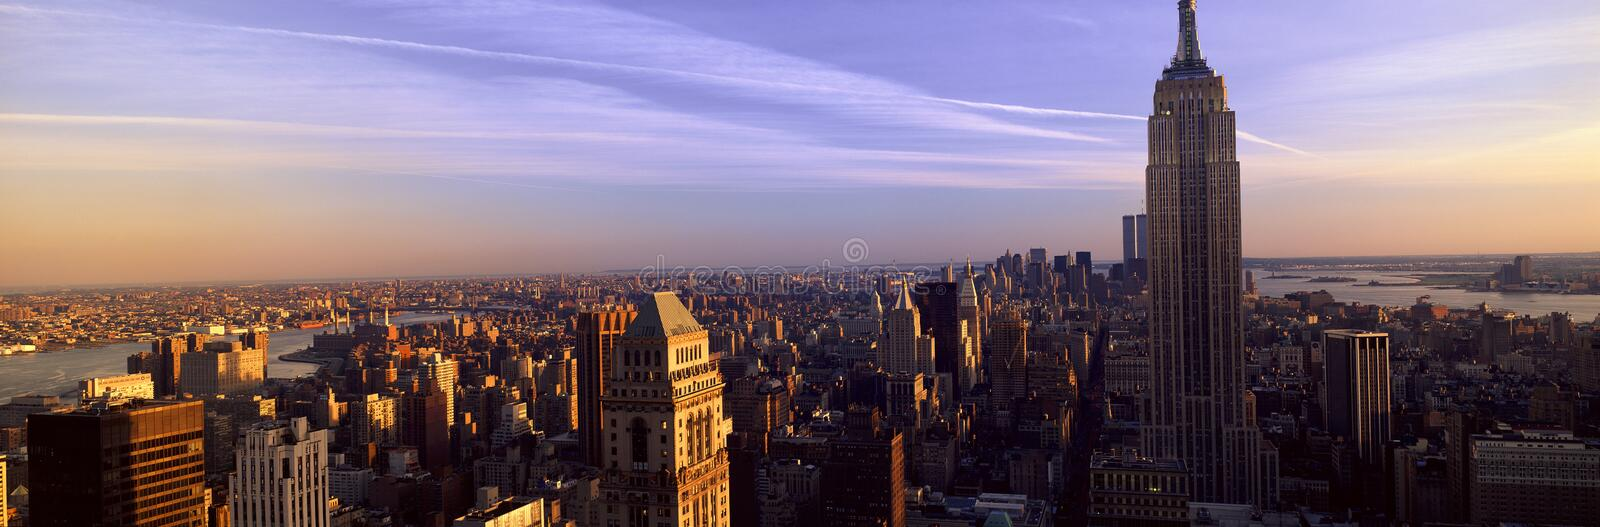 Panoramic view of New York City skyline with Empire State Building, Manhattan, NY stock photography